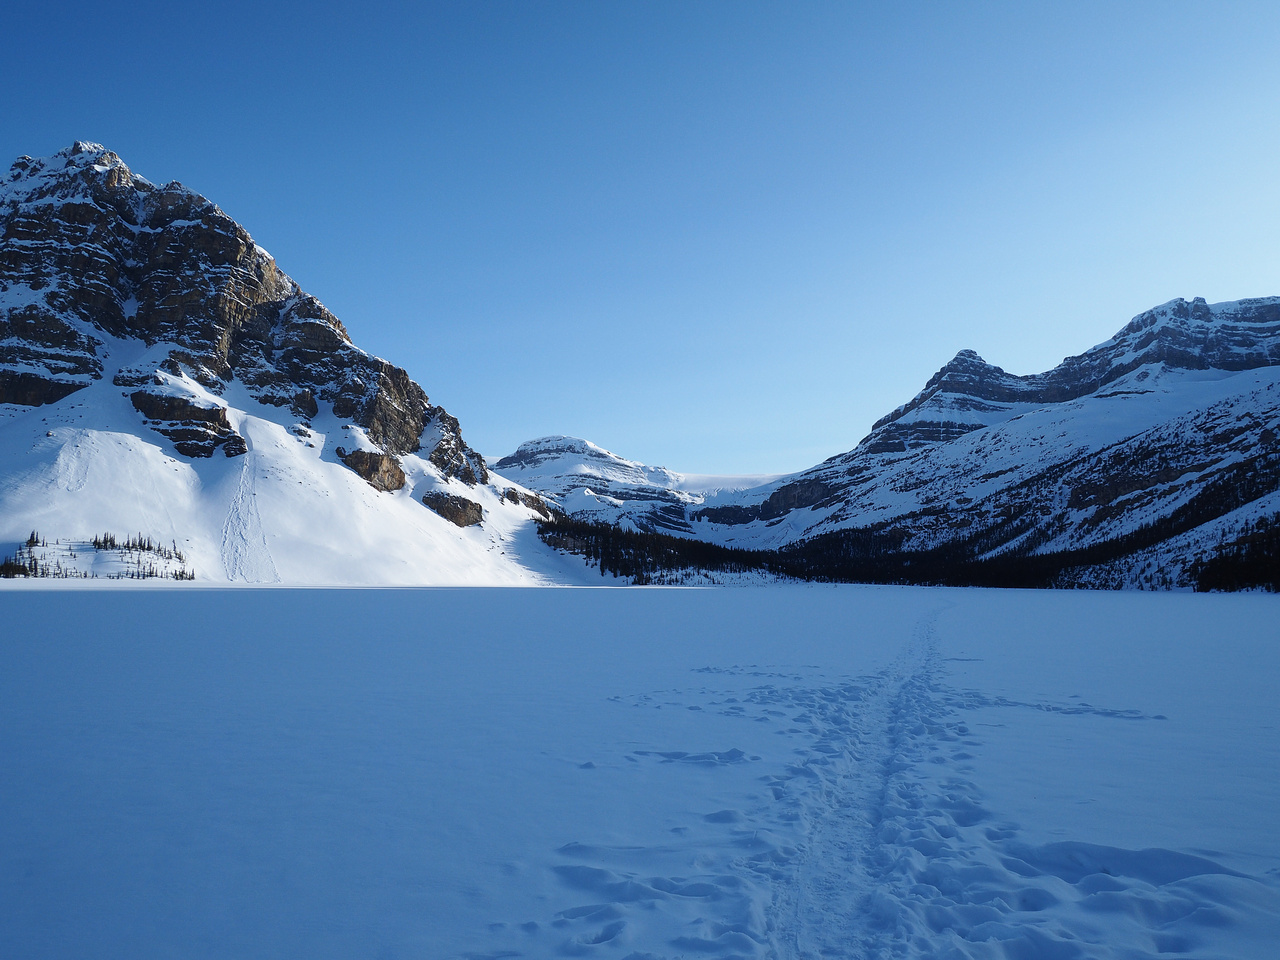 Skiing across Bow Lake on May 7th. Hoping we don't fall through the ice... A nice evening.